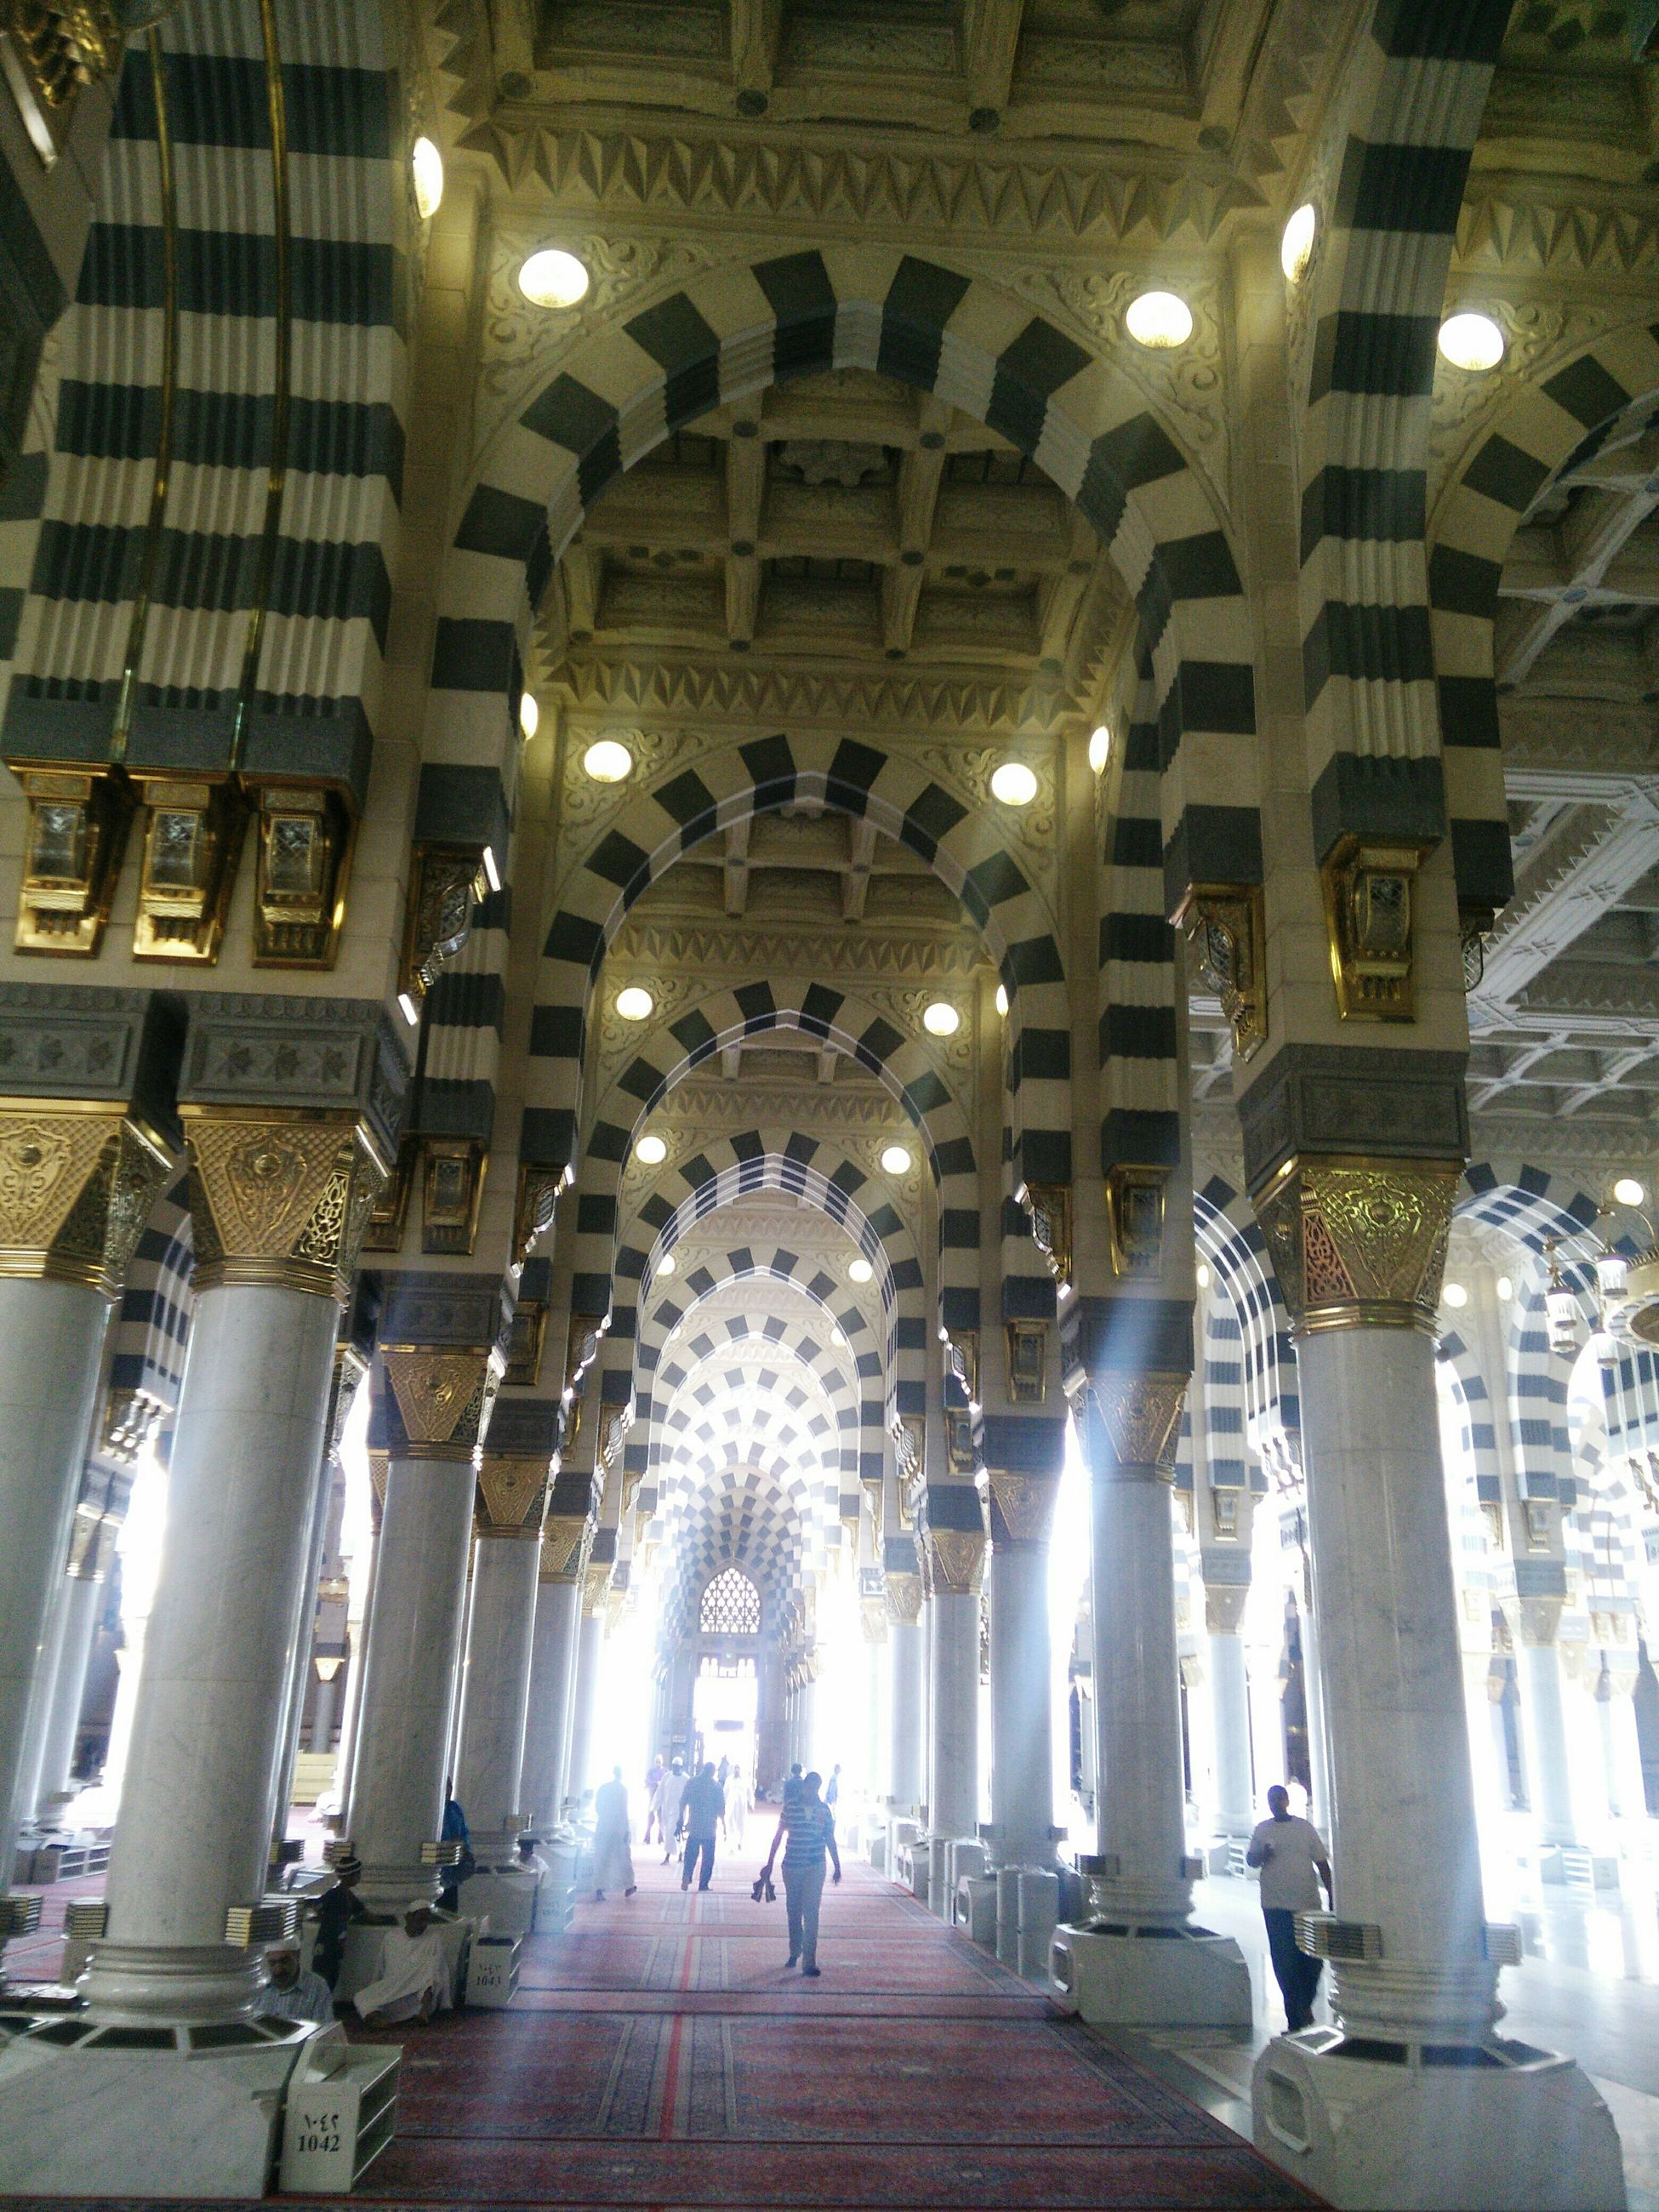 indoors, illuminated, architecture, ceiling, built structure, lighting equipment, architectural column, place of worship, people, night, religion, arch, spirituality, large group of people, corridor, famous place, travel destinations, lifestyles